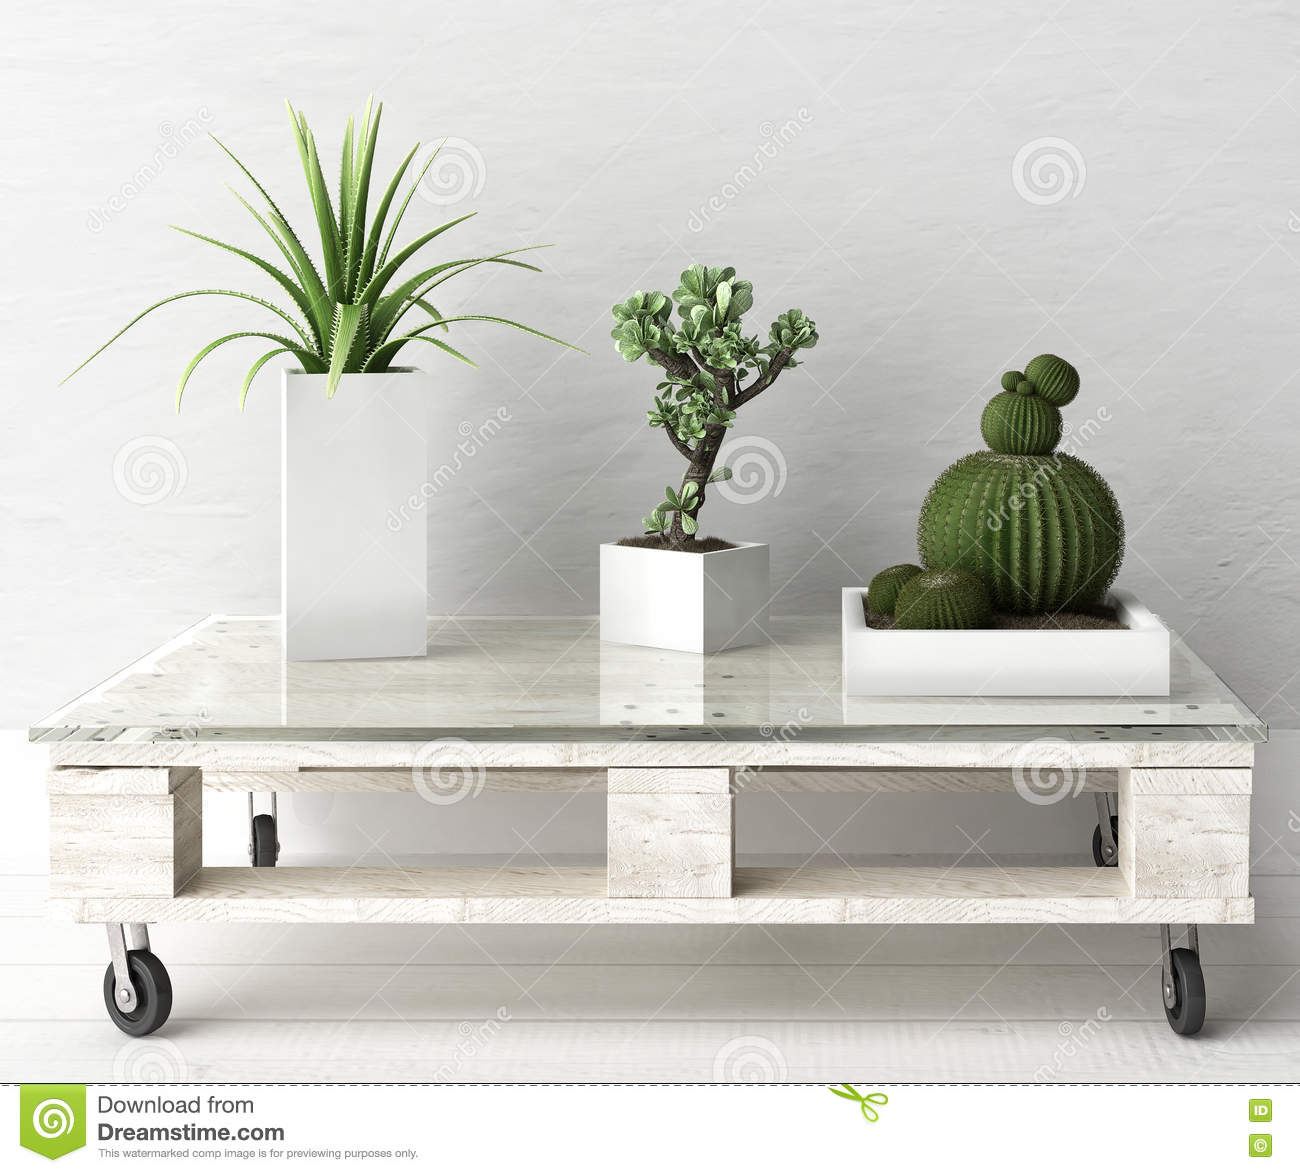 Succulent plants on pallet coffee table stock illustration image royalty free illustration download succulent plants on pallet coffee table geotapseo Gallery